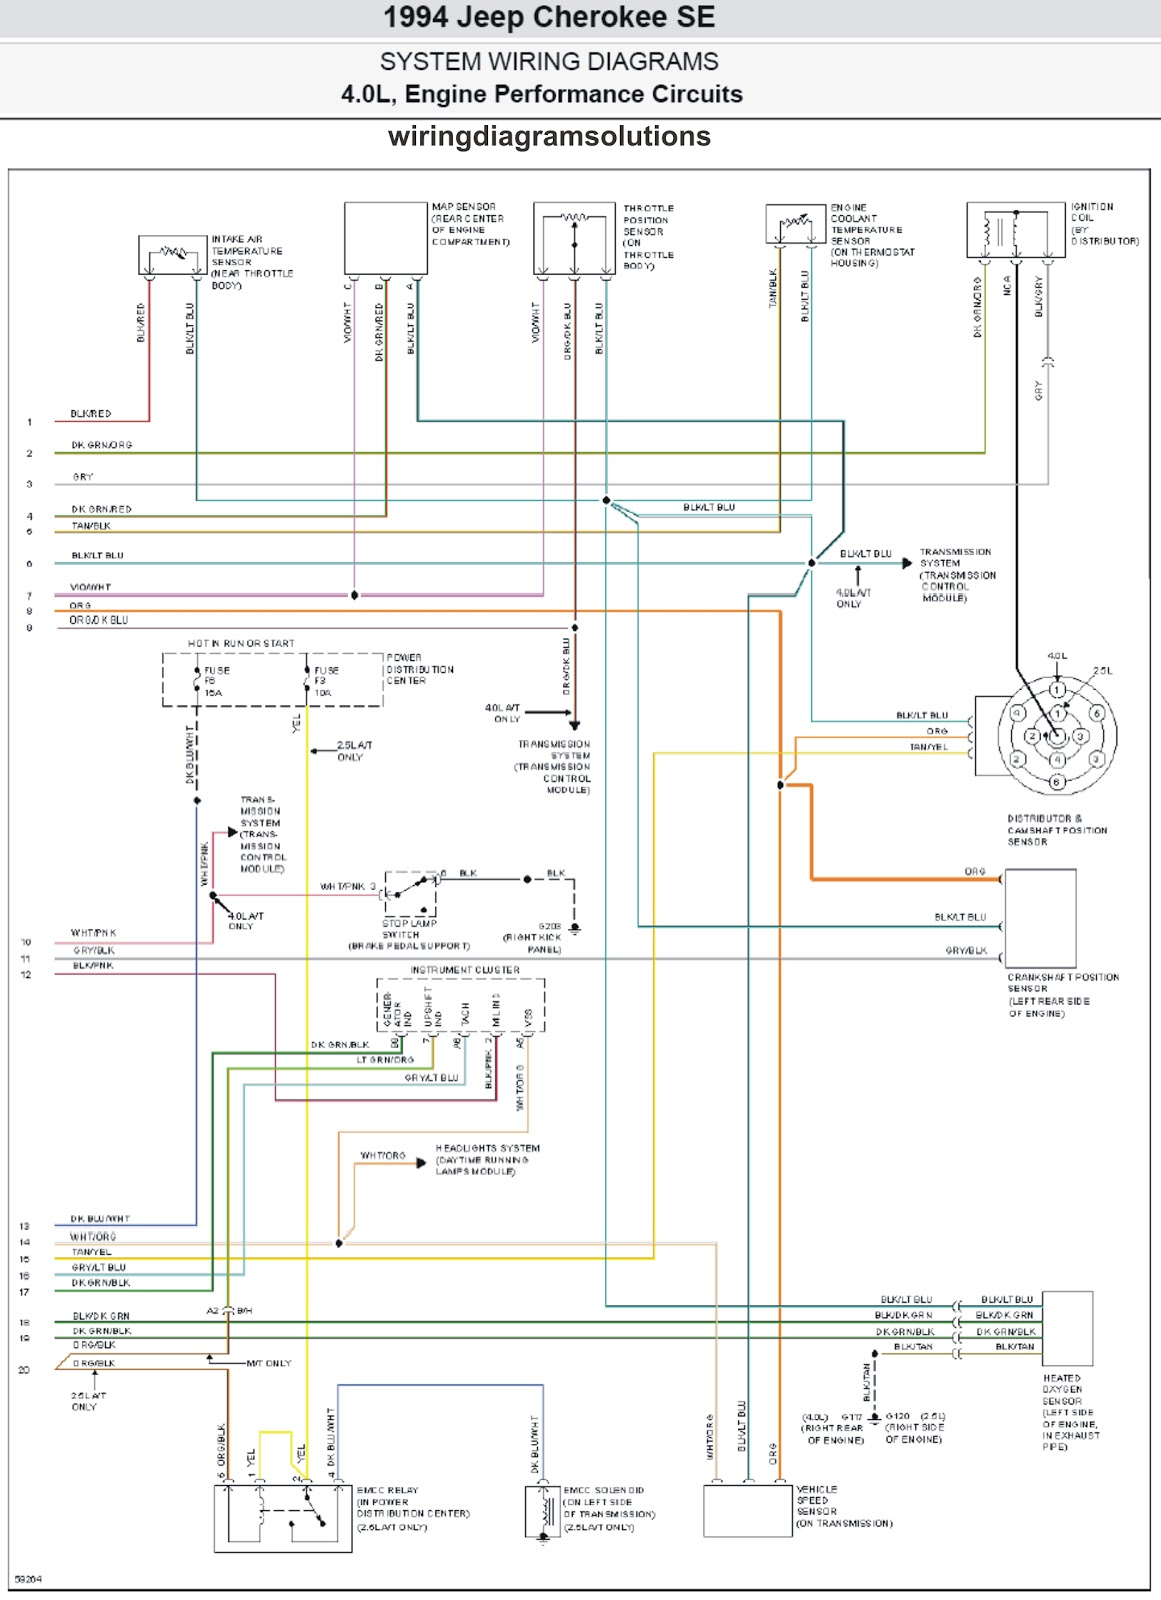 1994+Jeep+Cherokee+SE_2 2005 grand cherokee wiring diagram 2005 free wiring diagrams  at bakdesigns.co